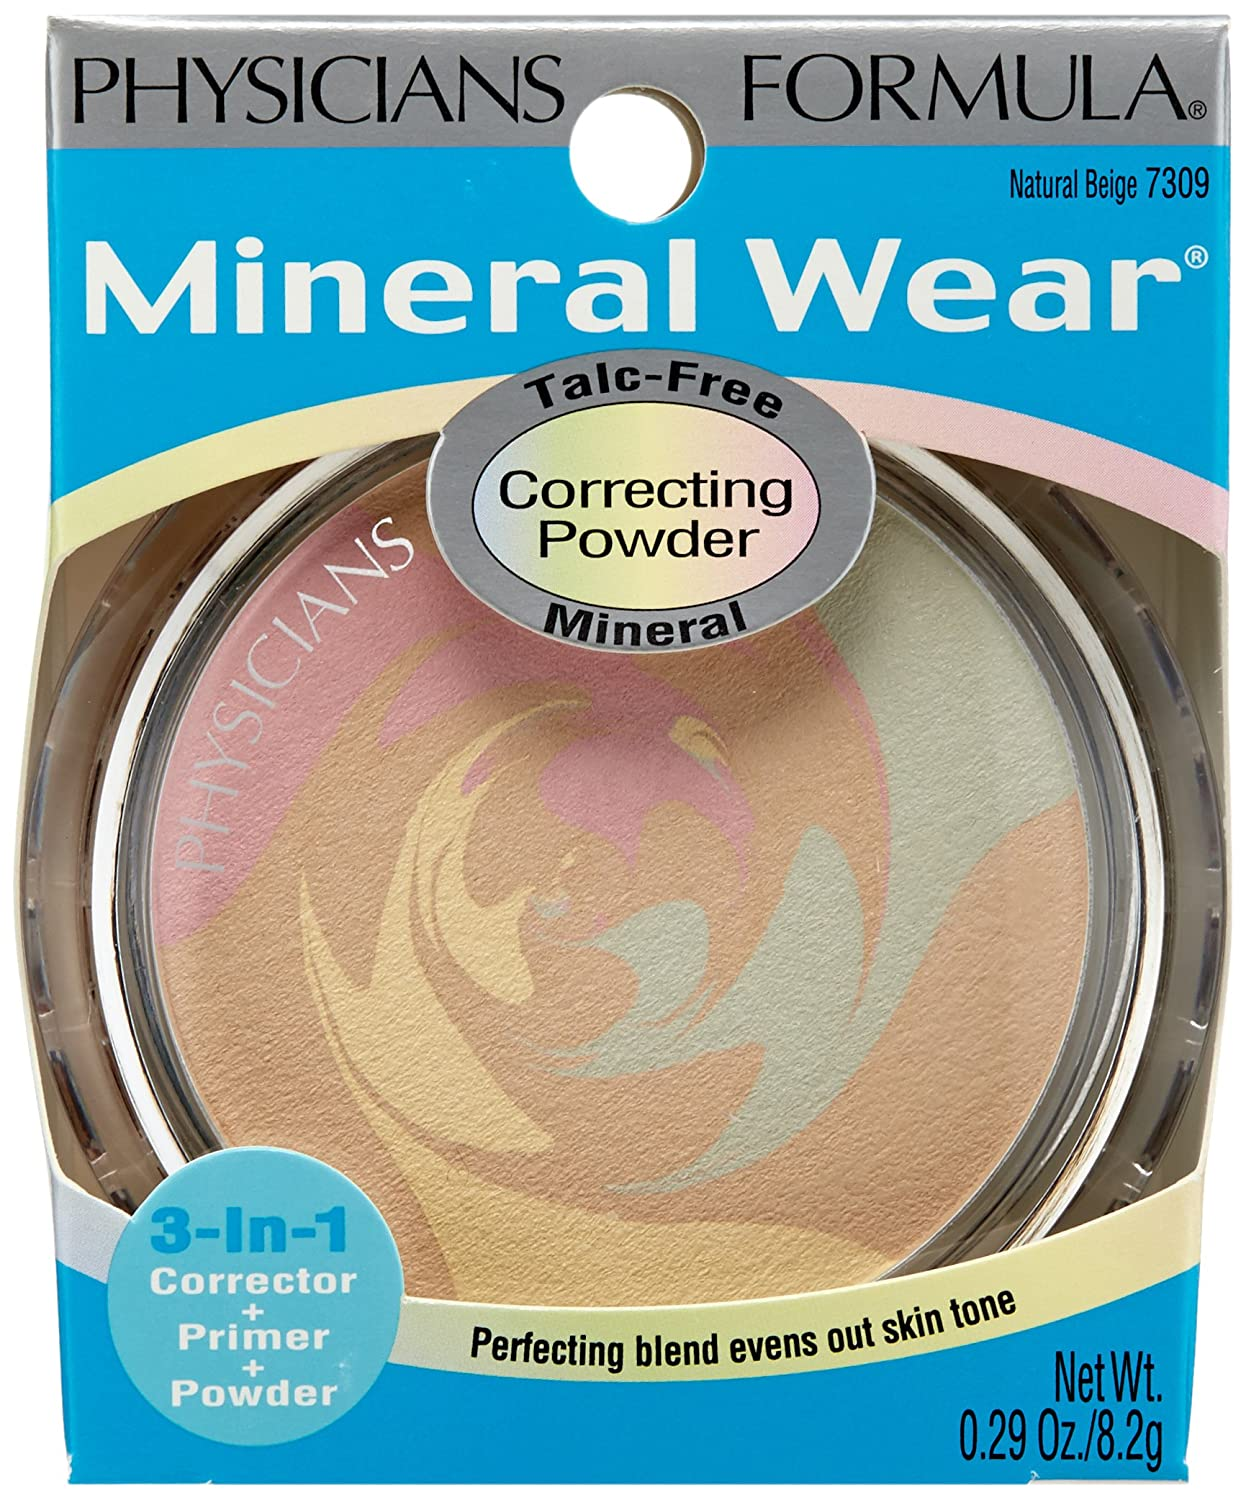 Mineral Wear Correcting Kit by Physicians Formula #16